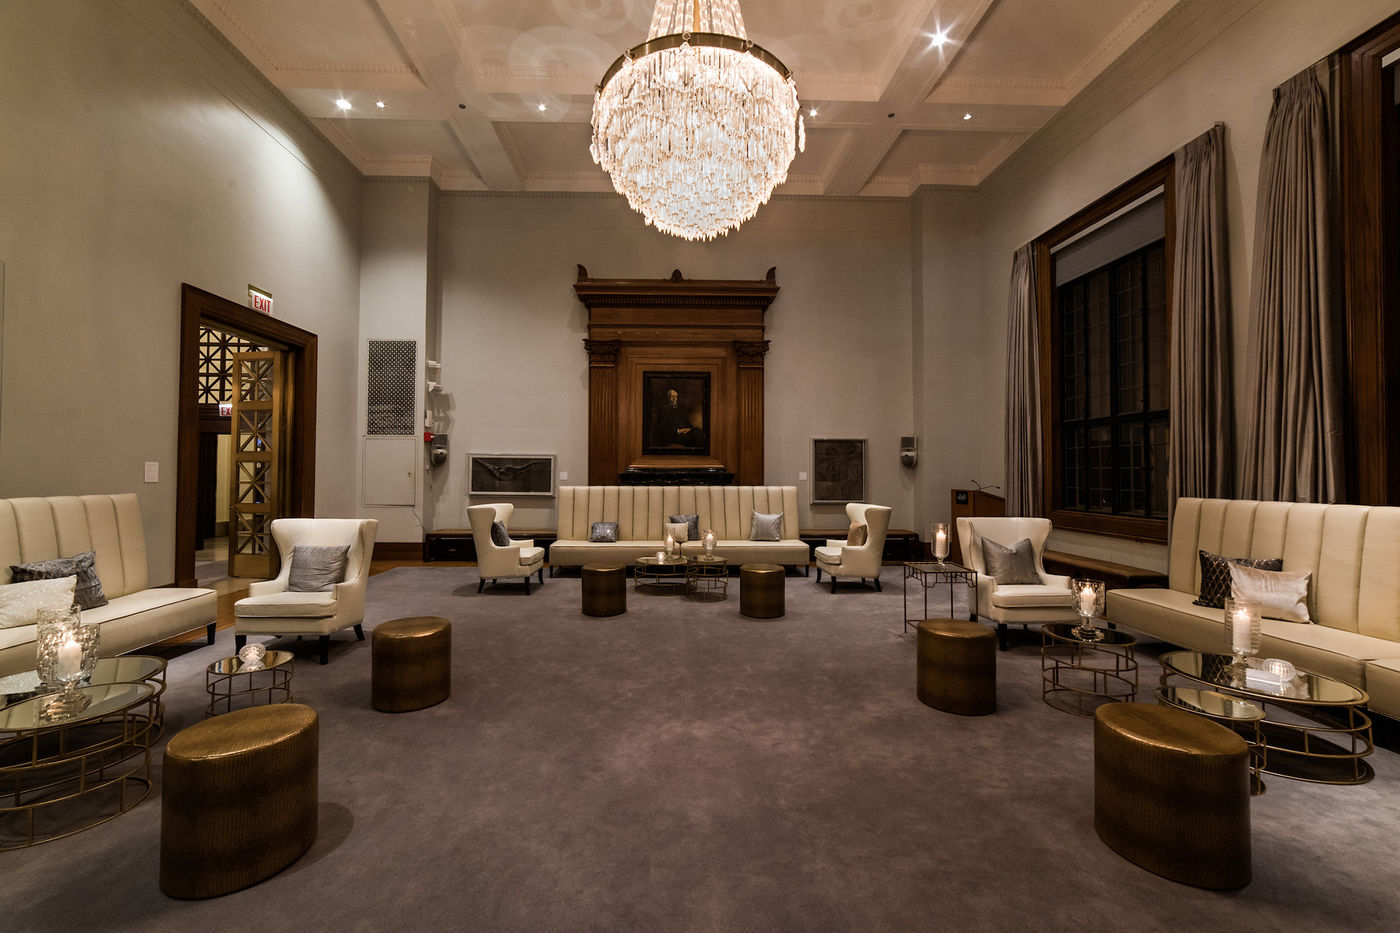 Founders' Room arranged for an event with a range of seating, including couches, chairs, and coffee tables.